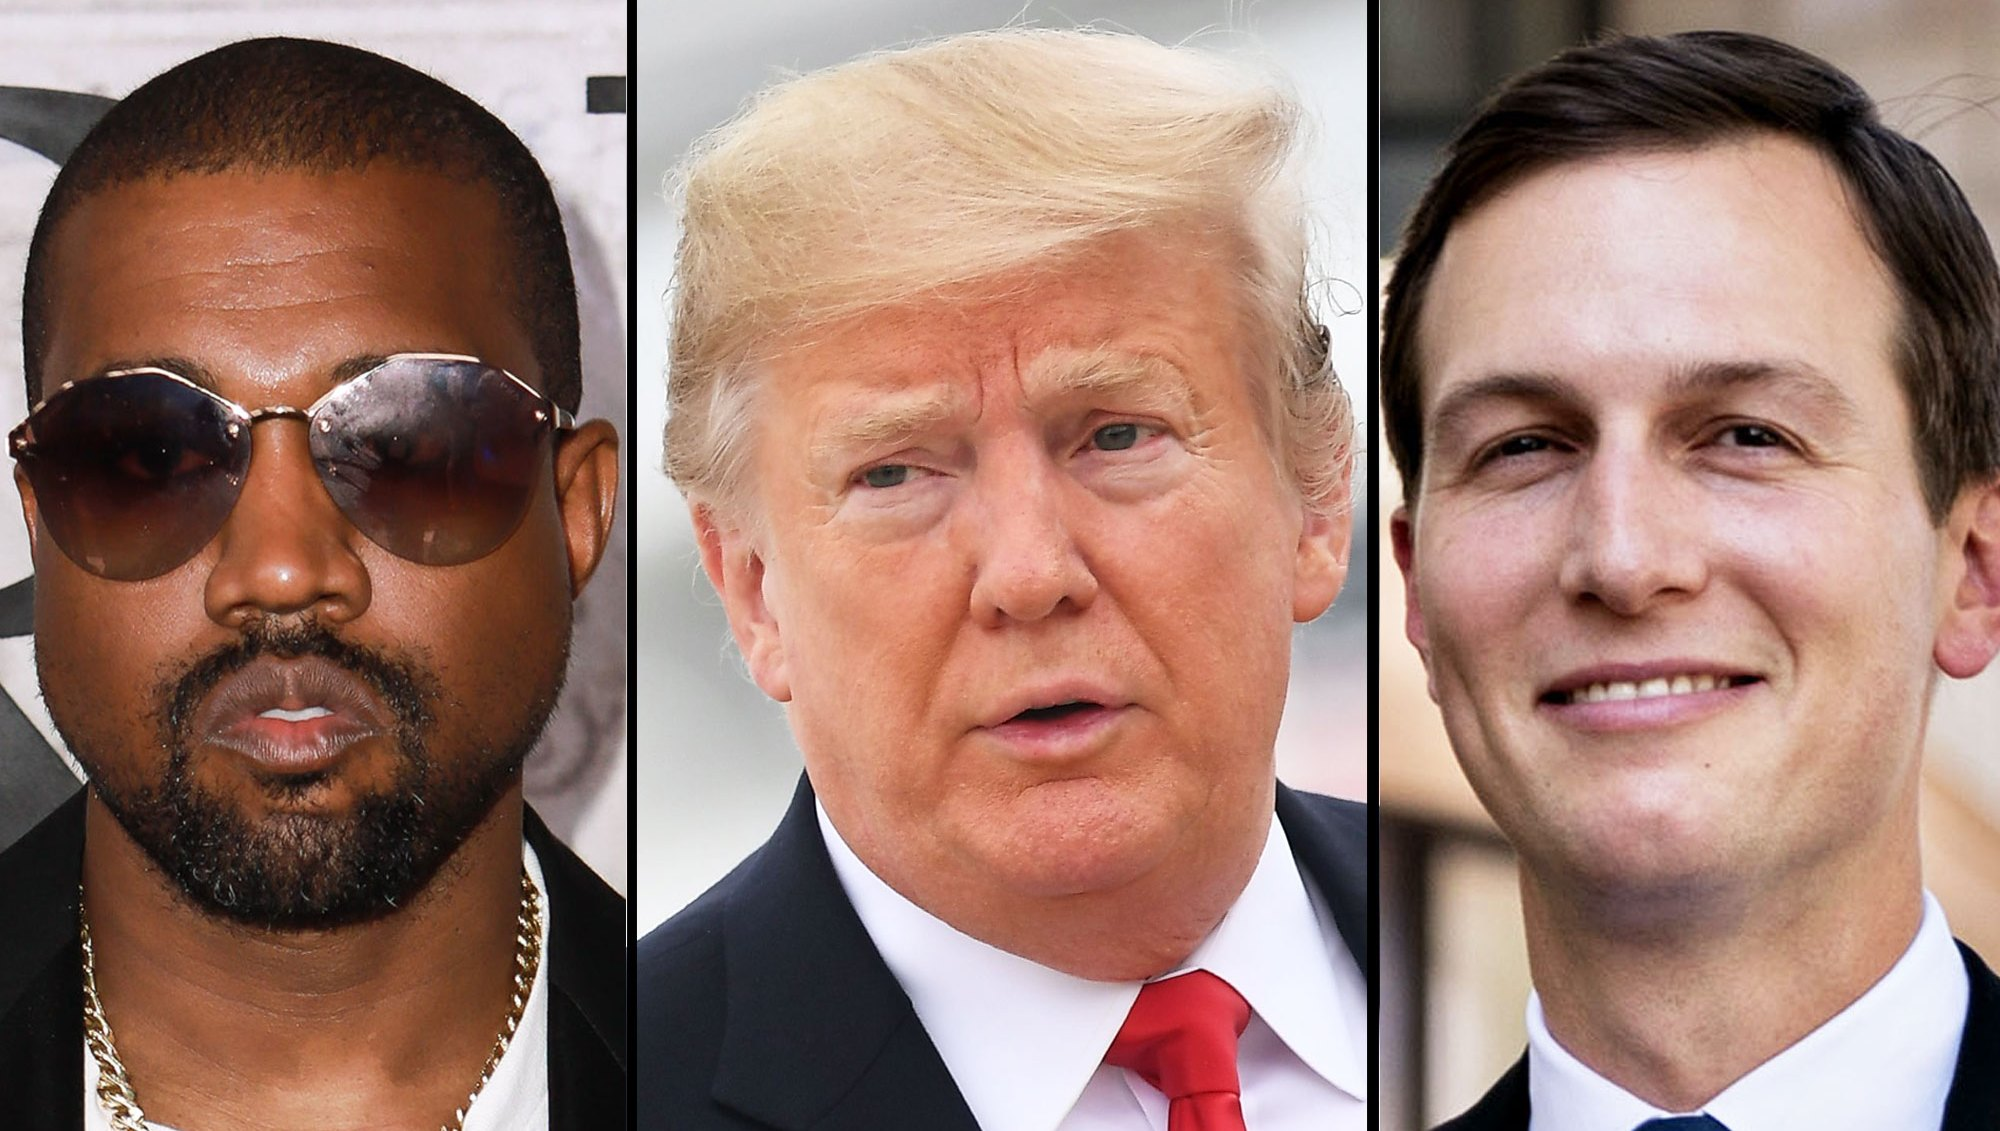 Kanye West, President Donald Trump and Jared Kushner